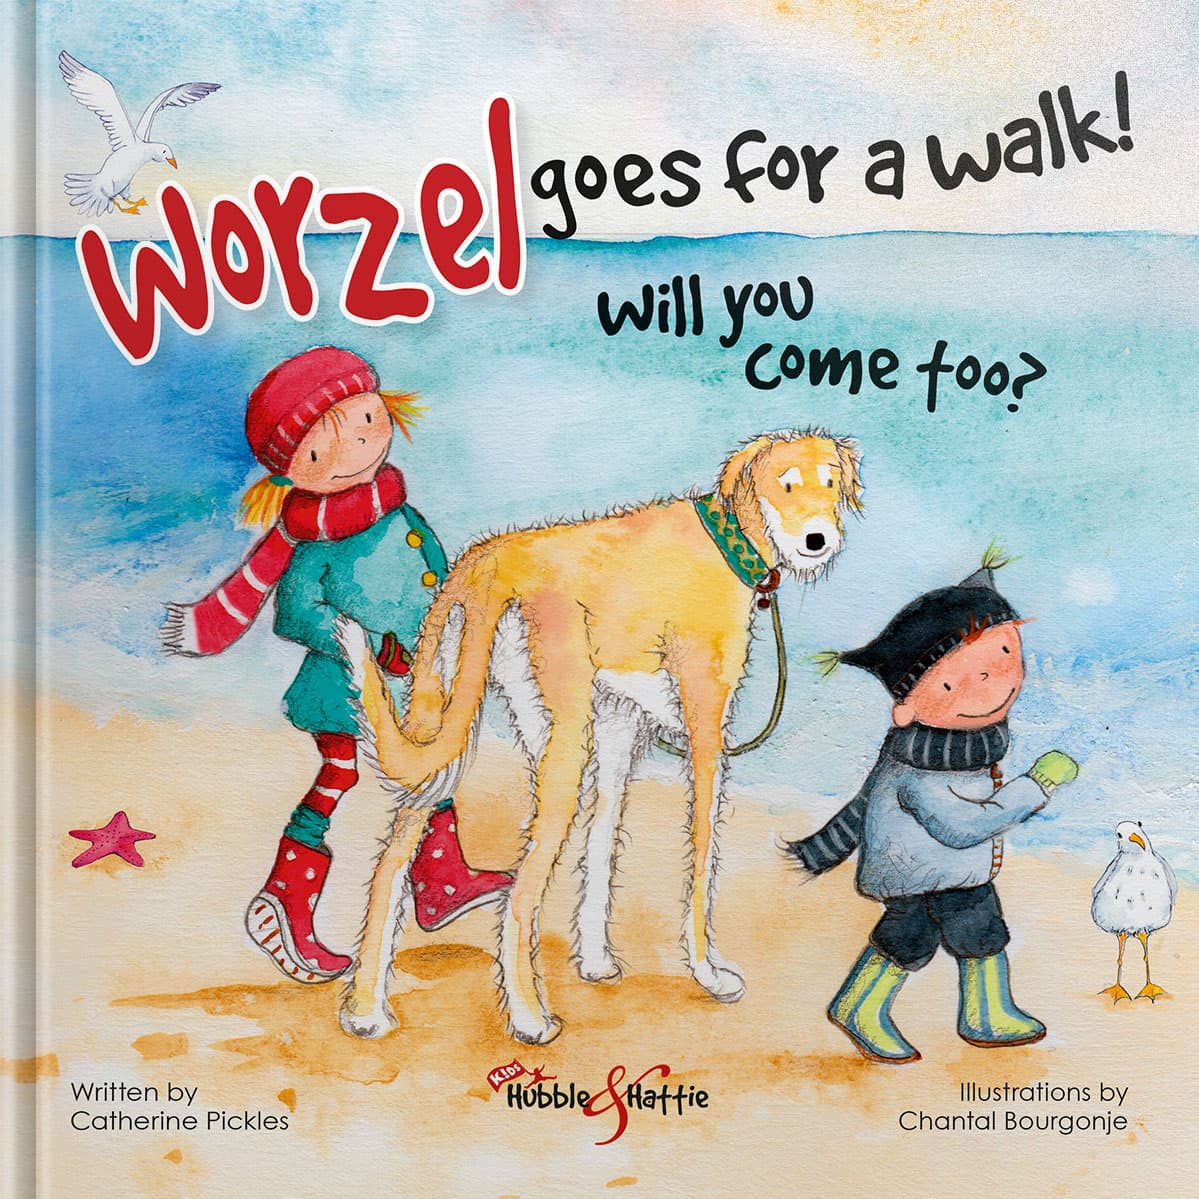 Worzel goes for a walk! Will you come too?